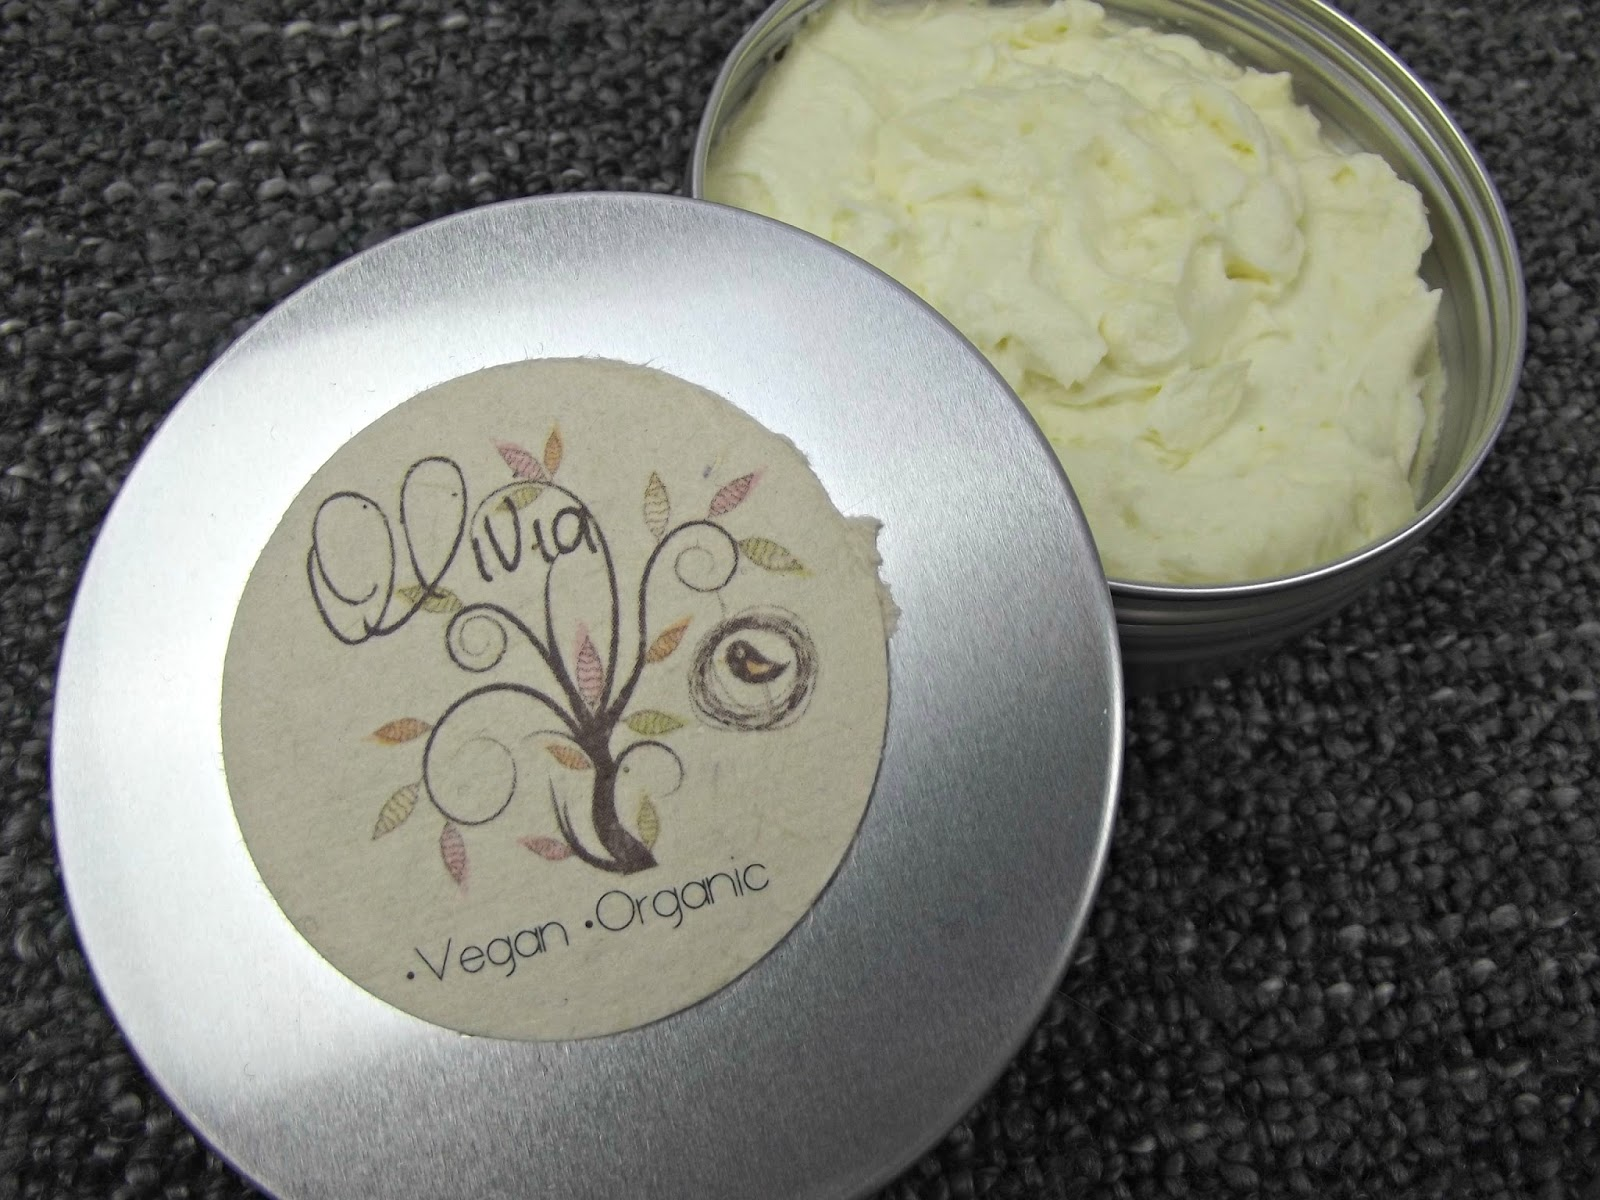 Olivia Soaps and Balms Chocolate and Coconut Body Butter